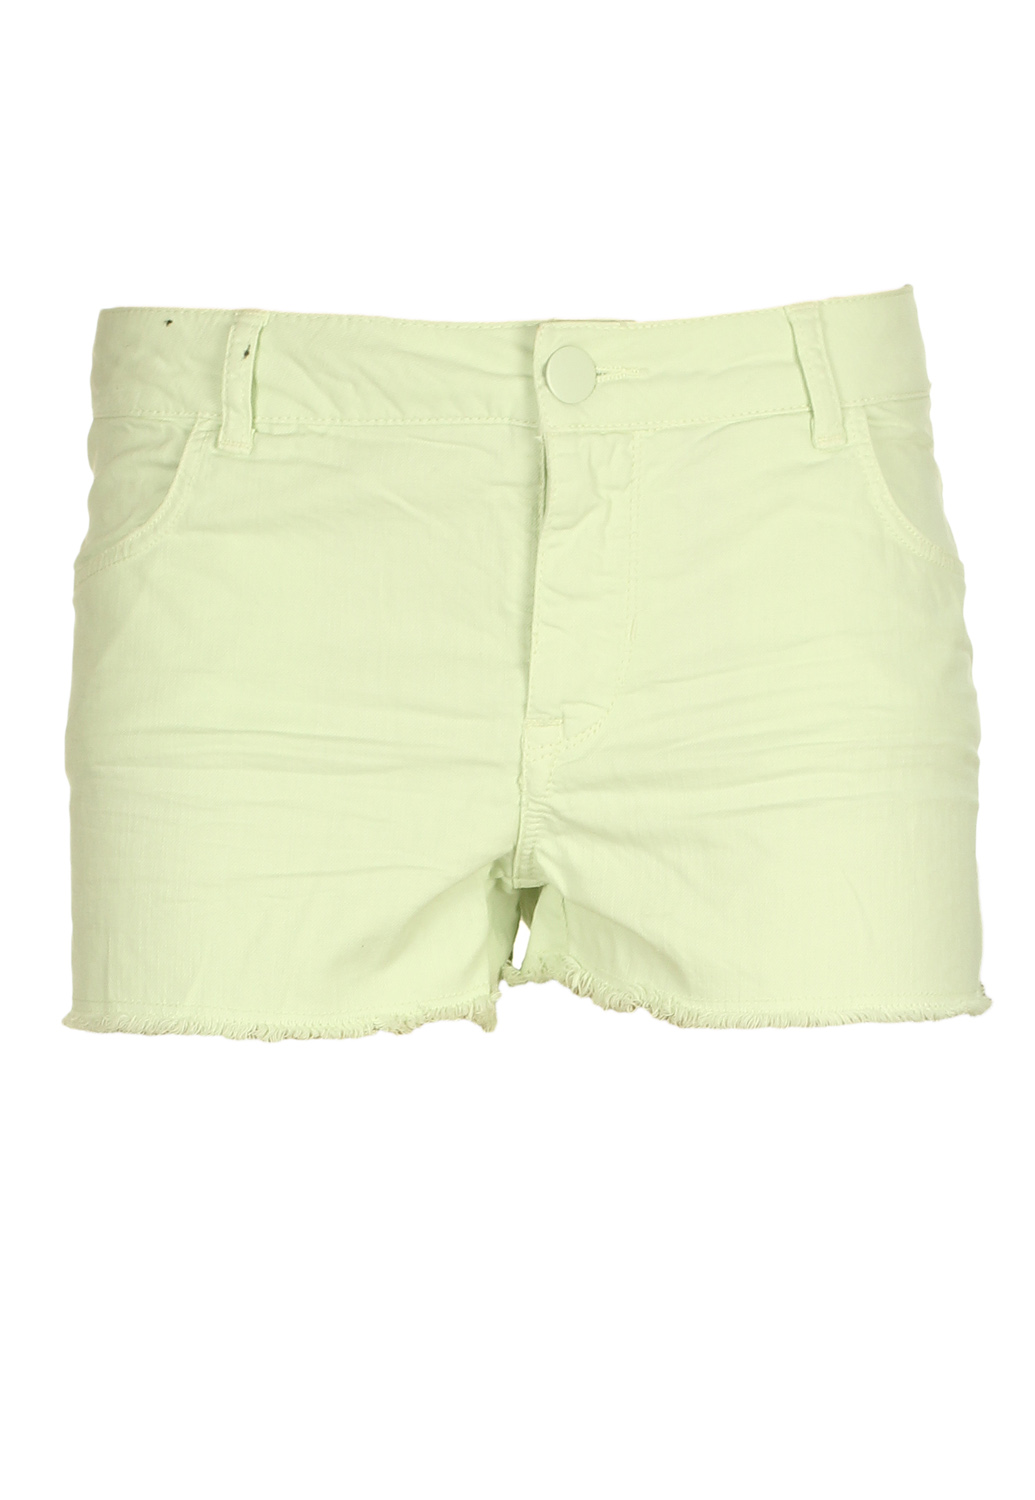 Pantaloni scurti Pimkie Basic Light Green, preturi, ieftine